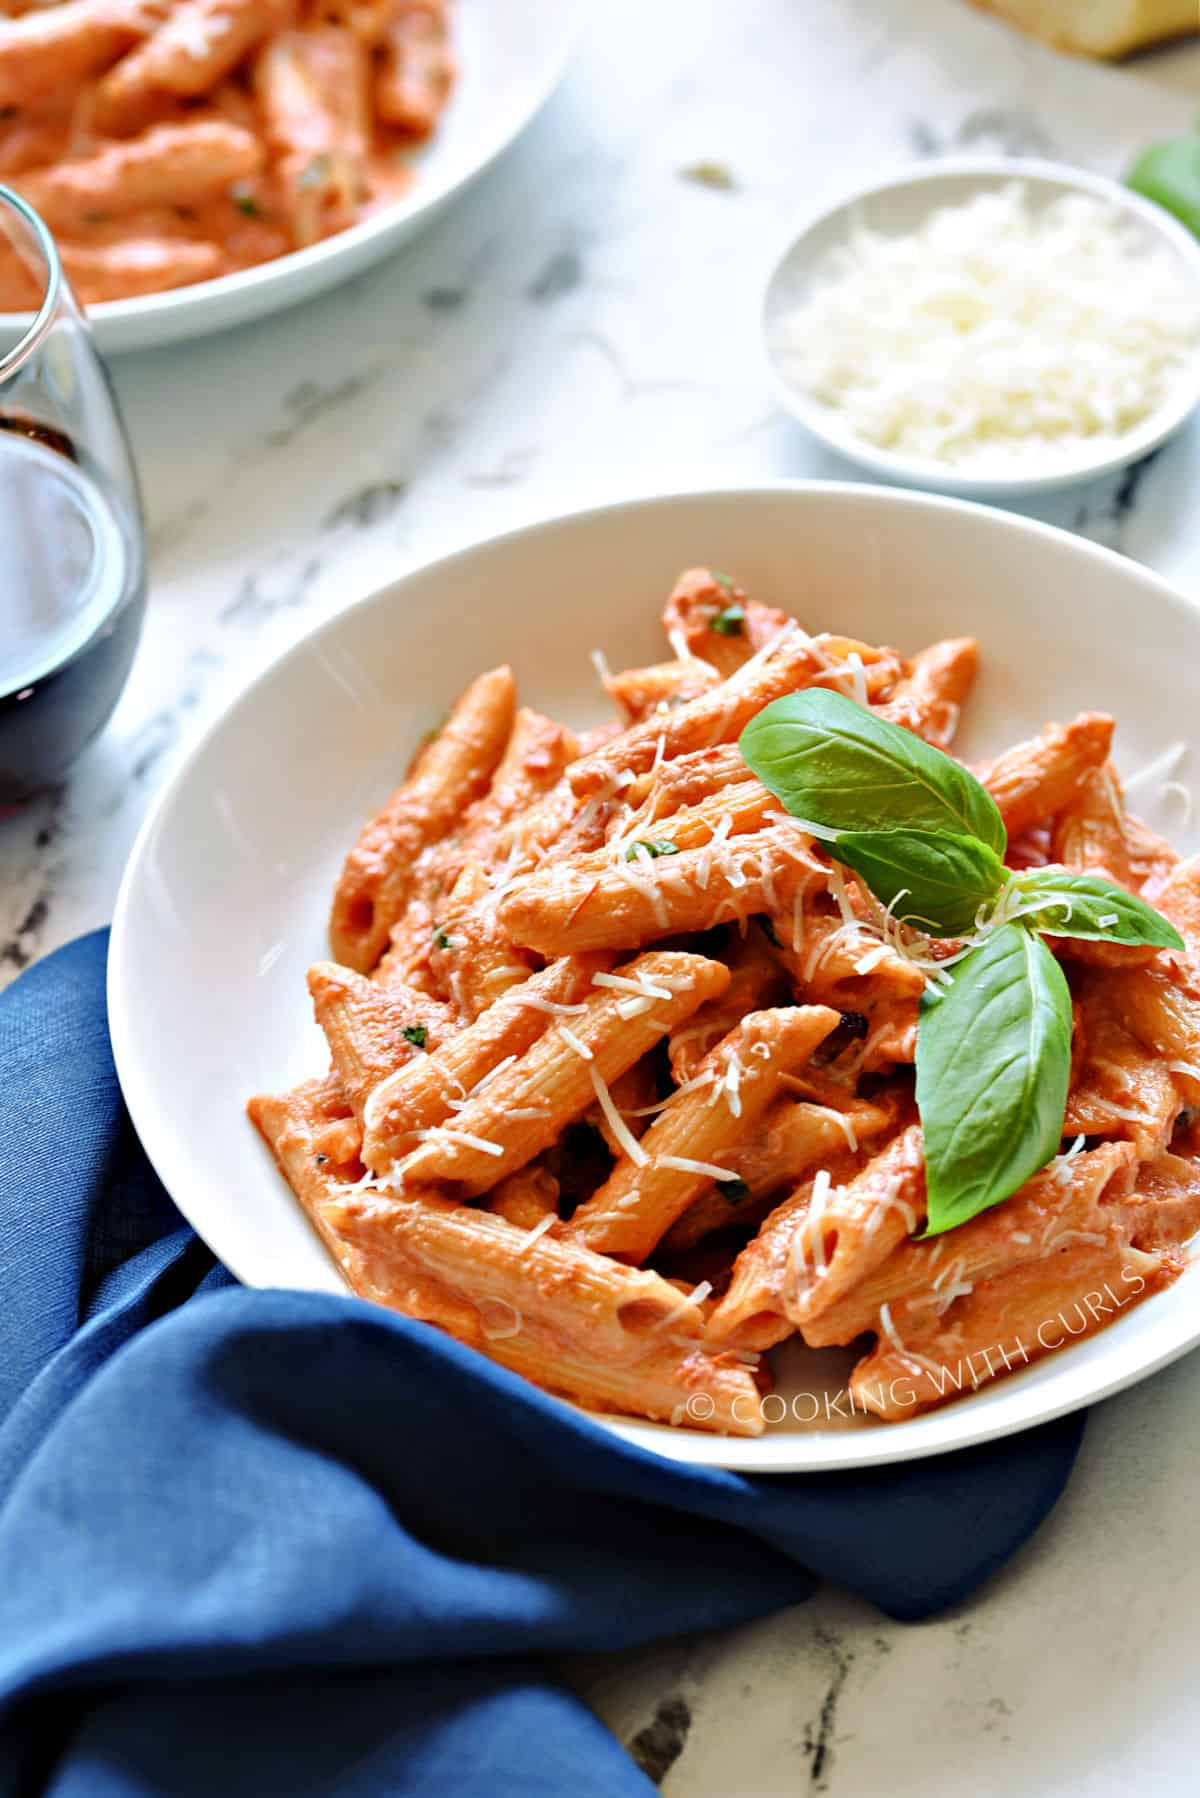 A bowl of Penne with creamy Vodka Sauce.